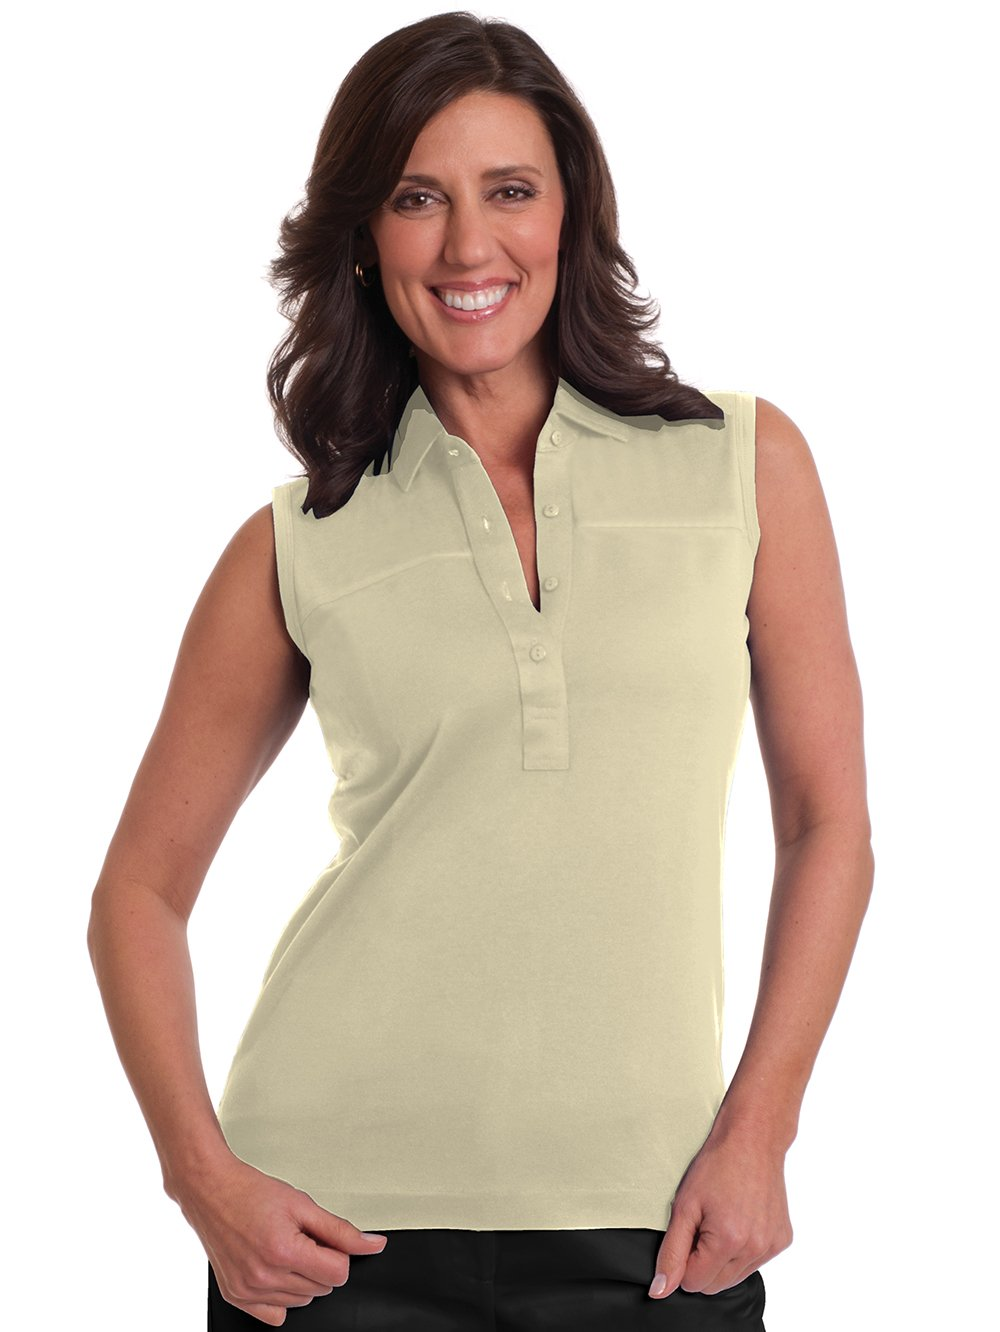 Sleeveless Solid Polo</br>Sand S50 - Leonlevin